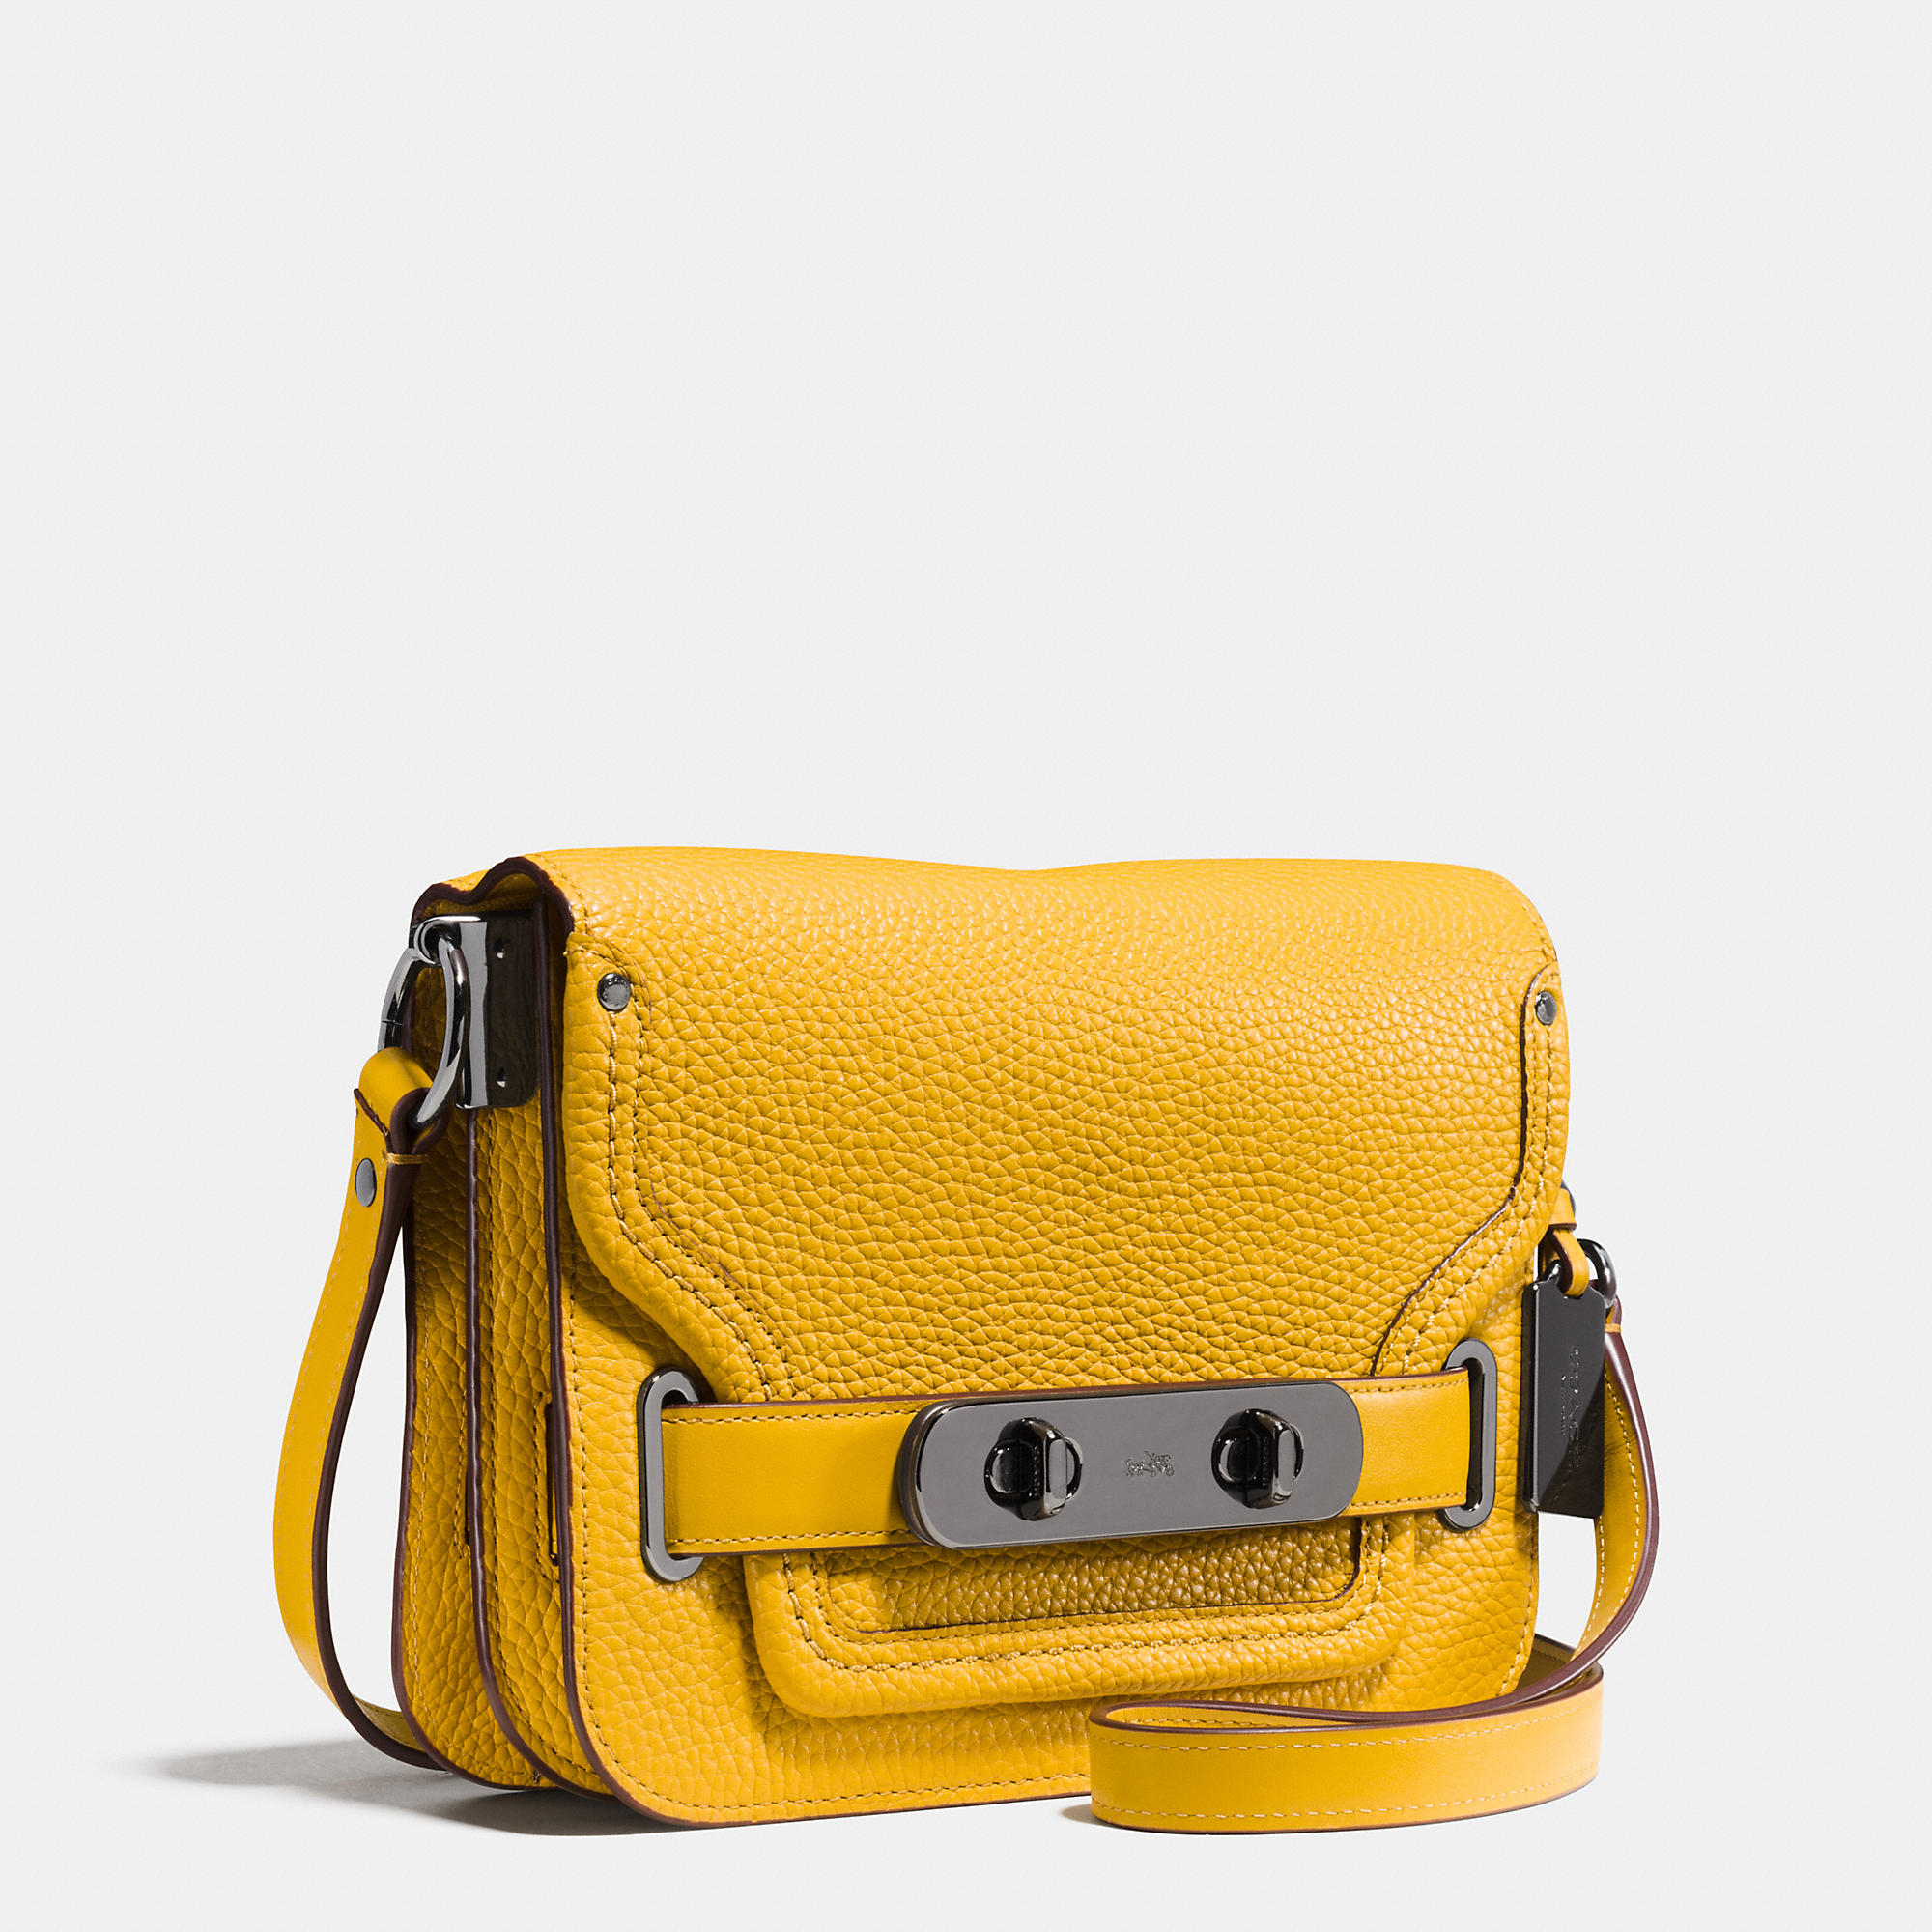 Coach Small Swagger Shoulder Bag In Pebble Leather In